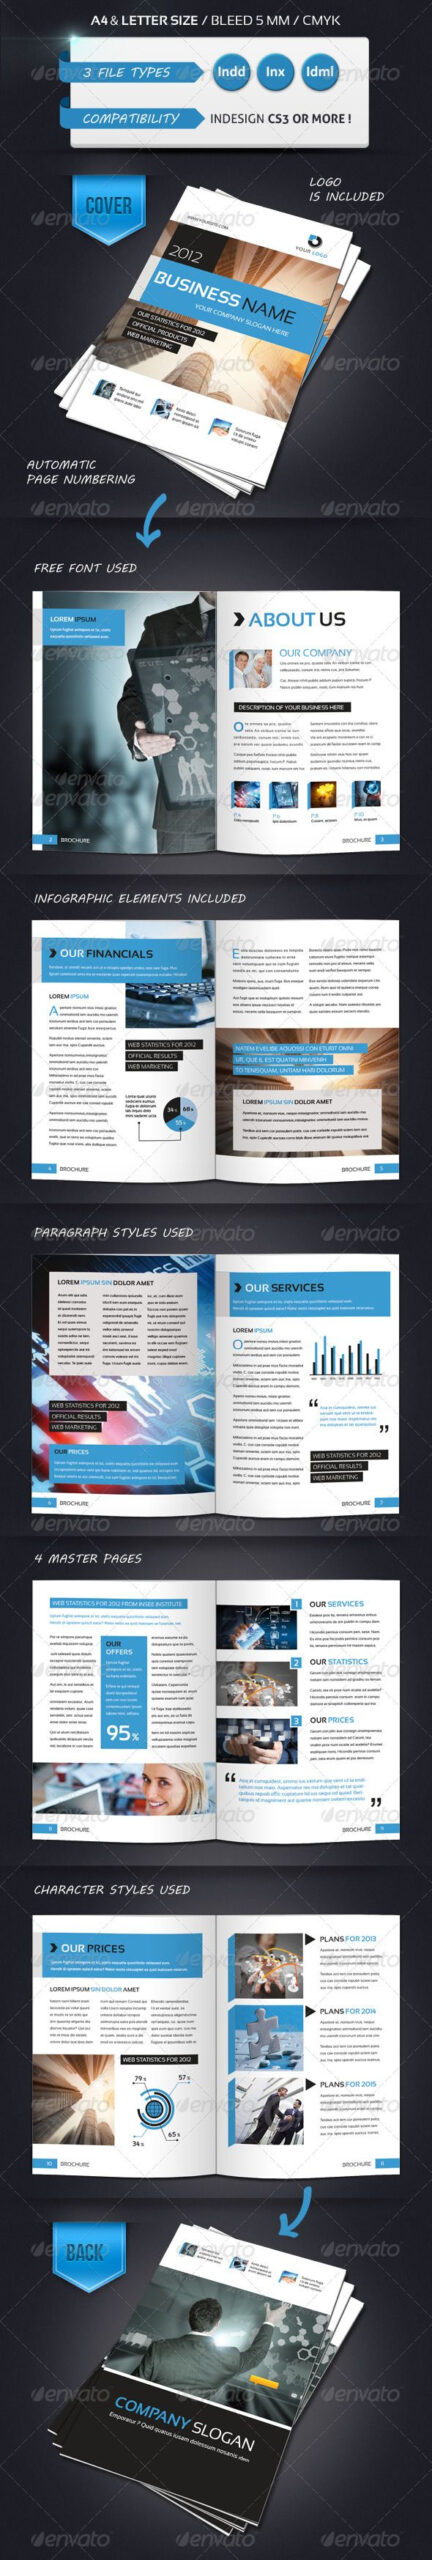 Modern Brochure Template A4 12 Pages | Publication Design With Regard To 12 Page Brochure Template